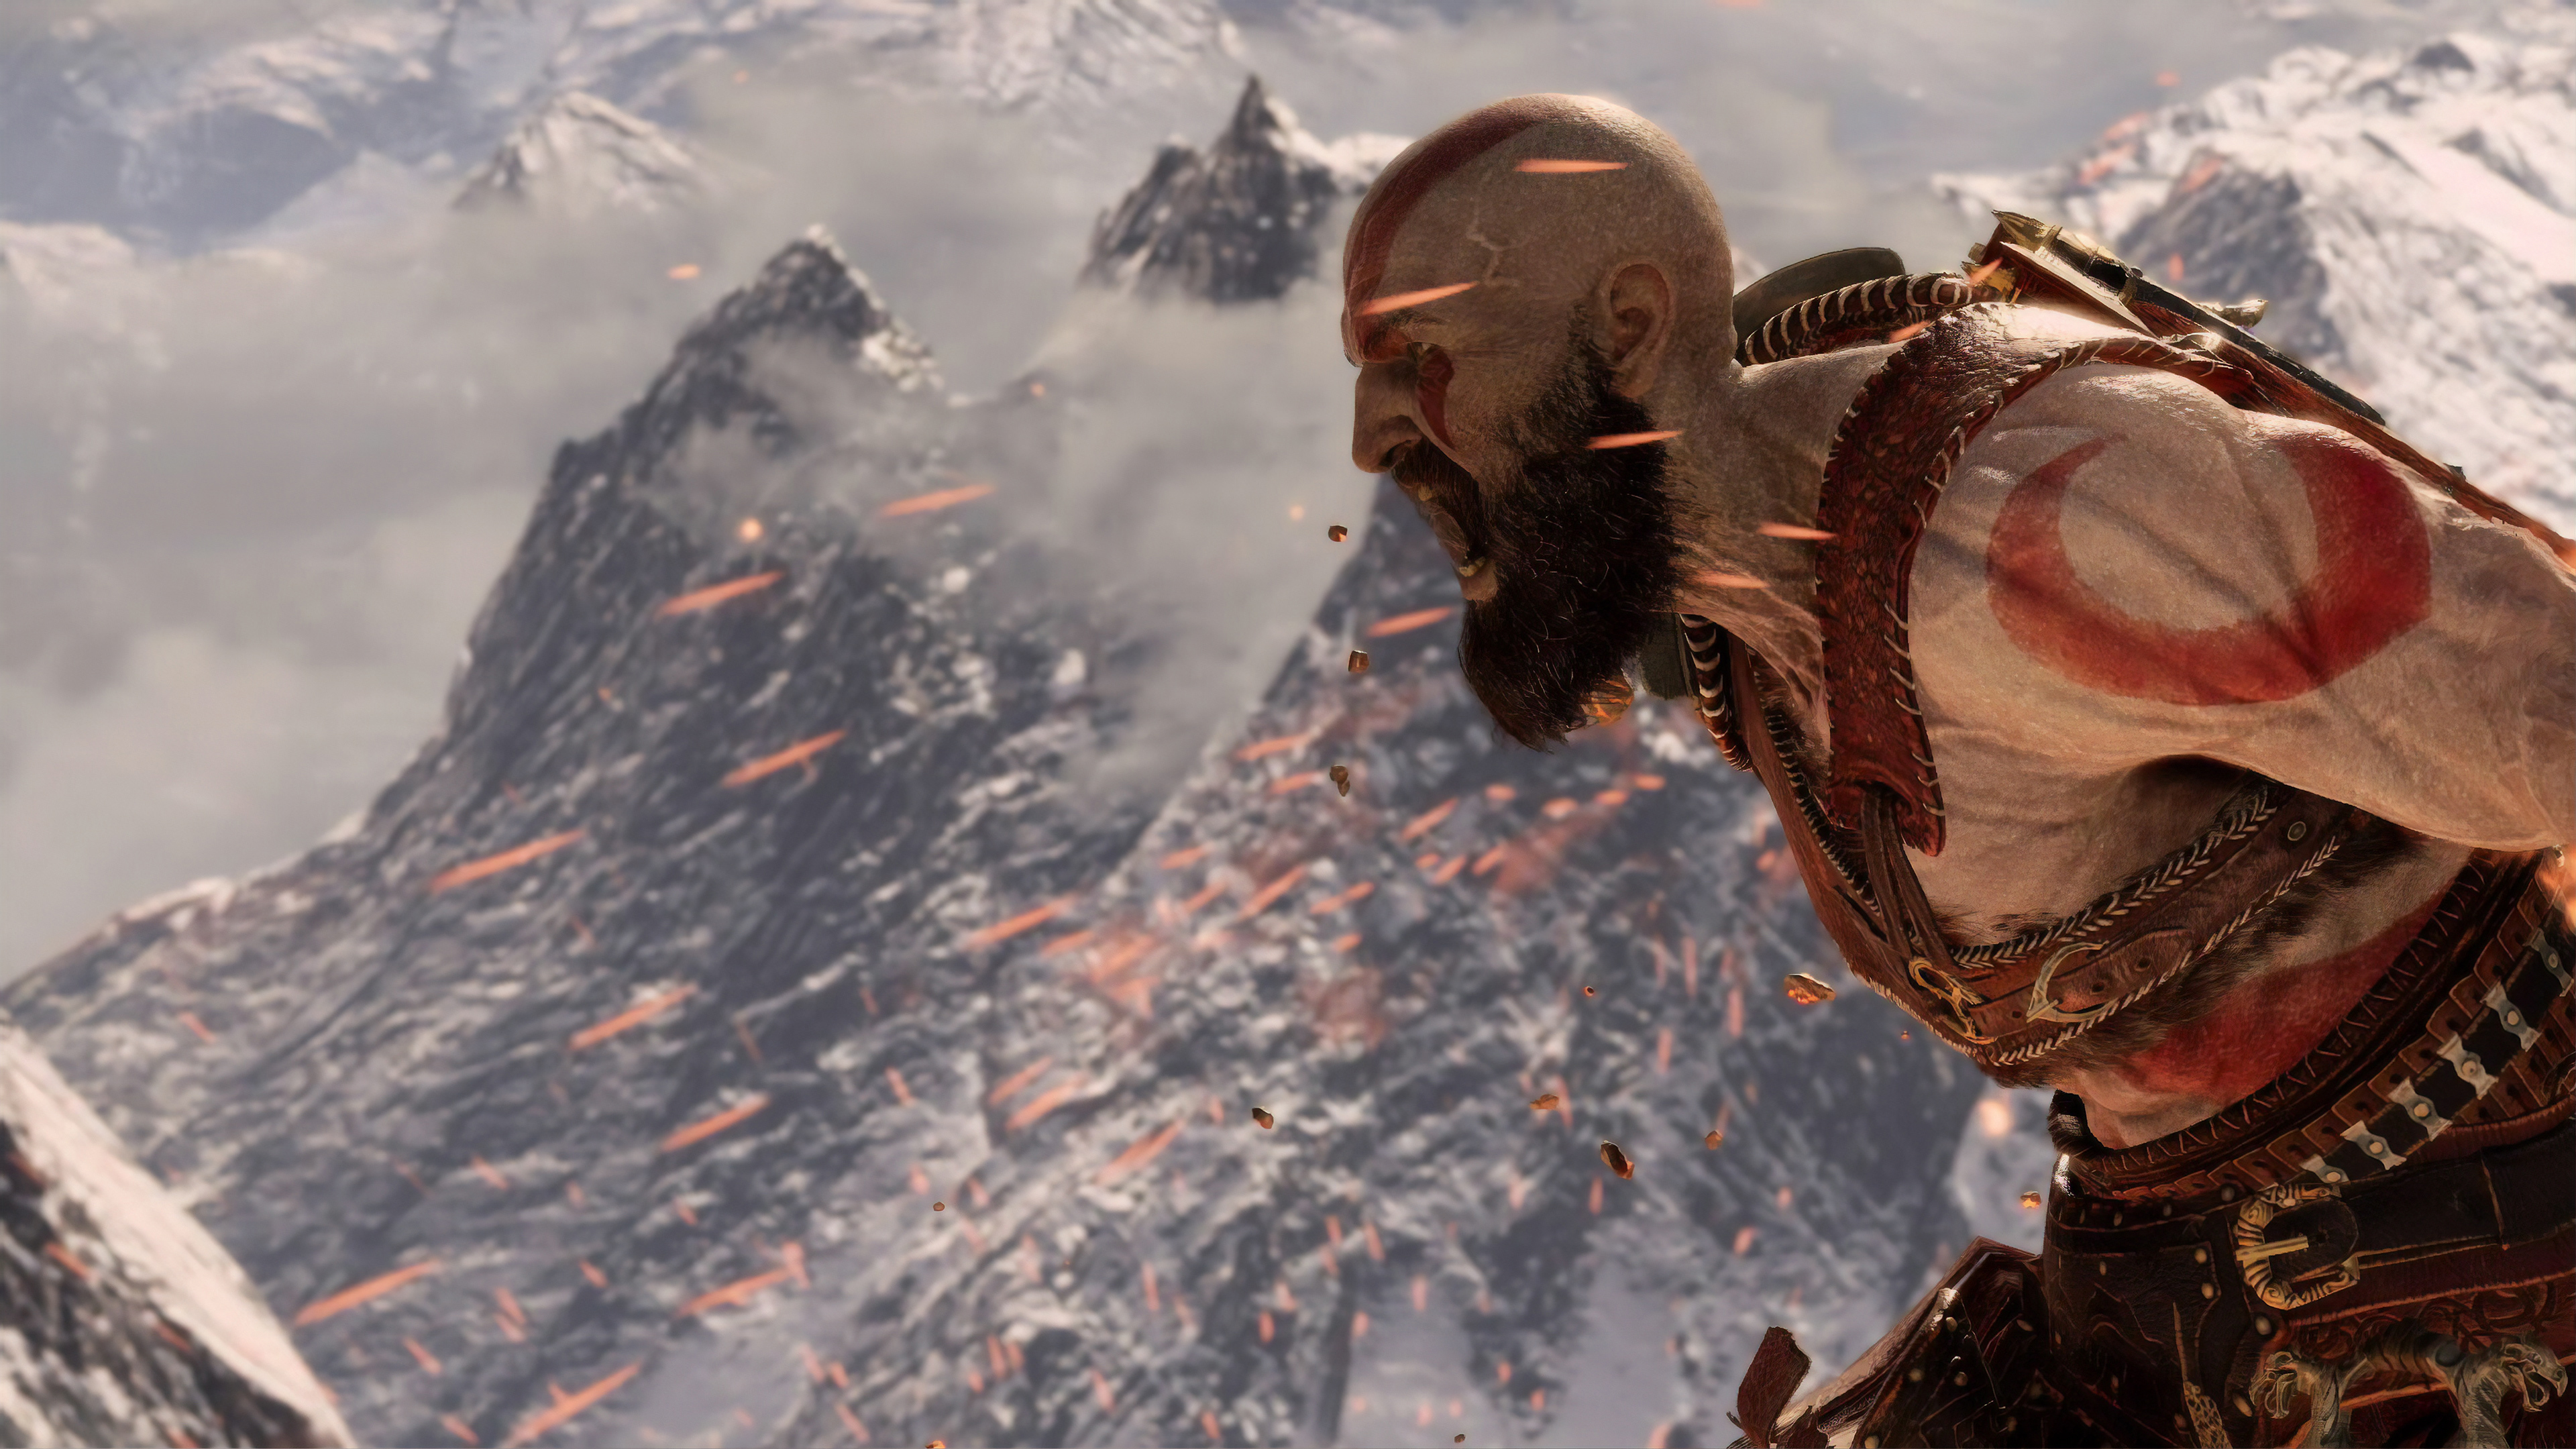 3840x2160 2019 God Of War 4 4k 4k Hd 4k Wallpapers Images